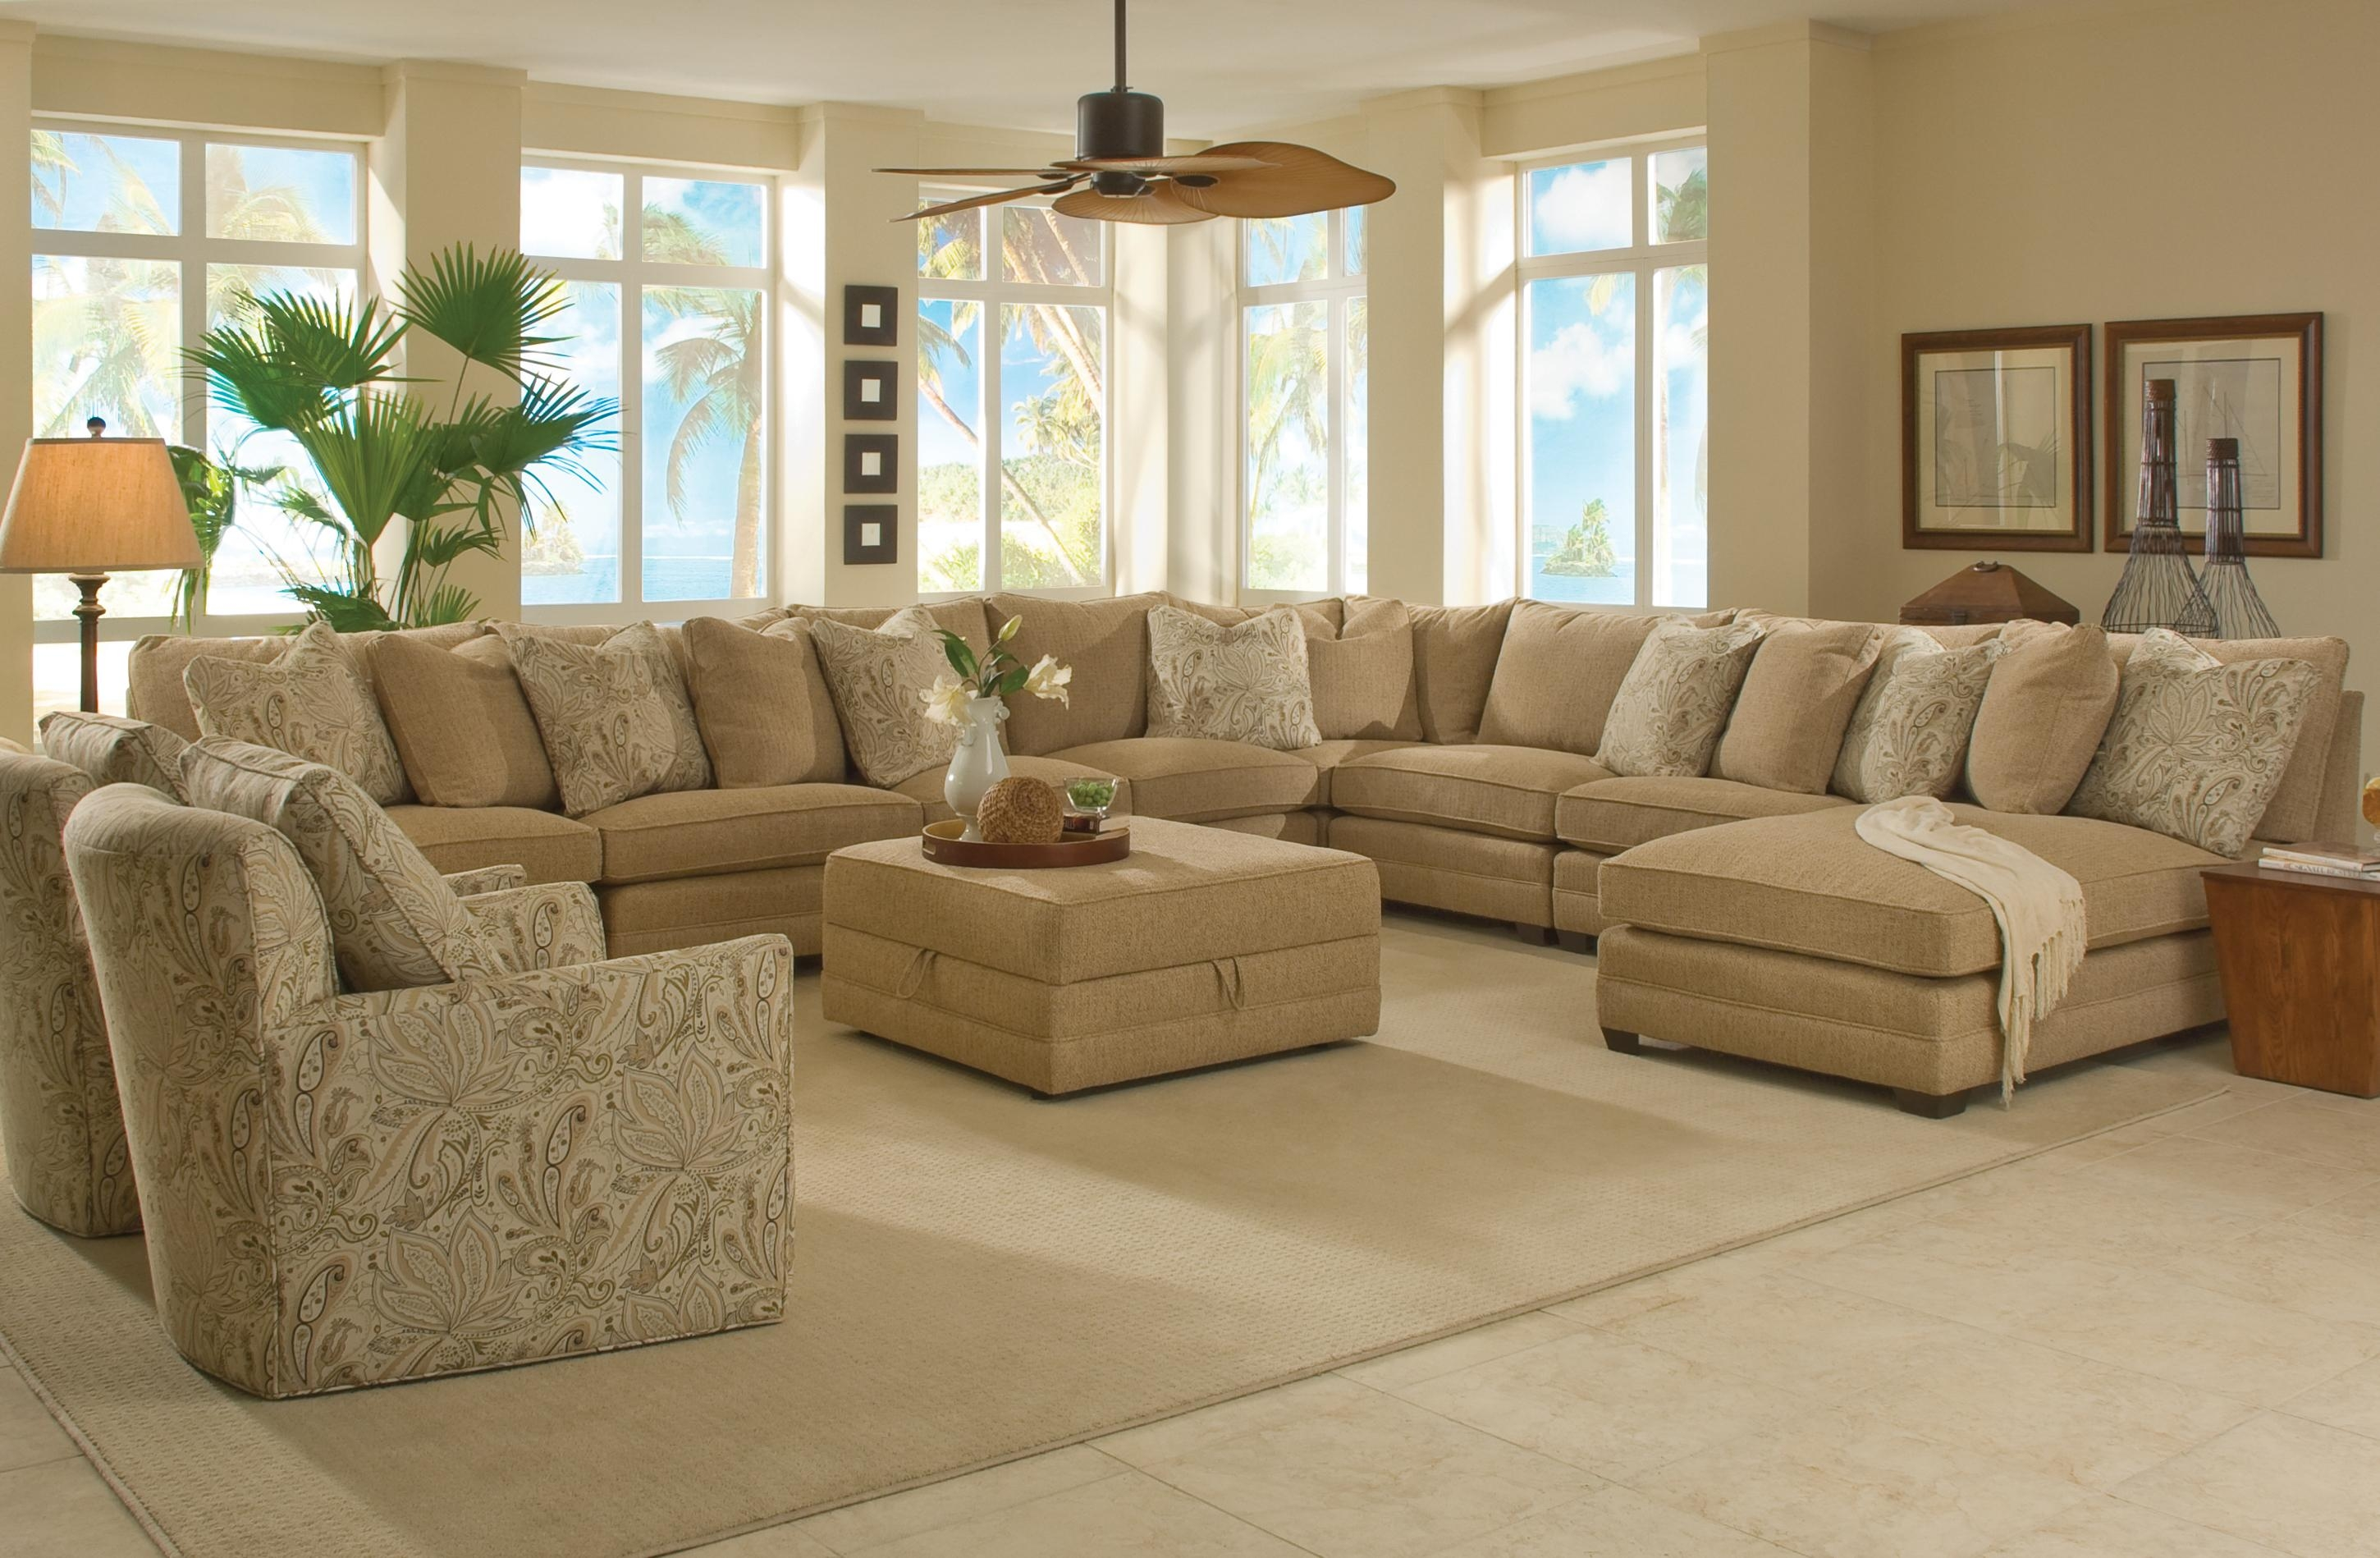 Beau Sam Moore Margo Wide Sectional Sofa Moores Home Furnishings Throughout Extra  Wide Sectional Sofas (Image